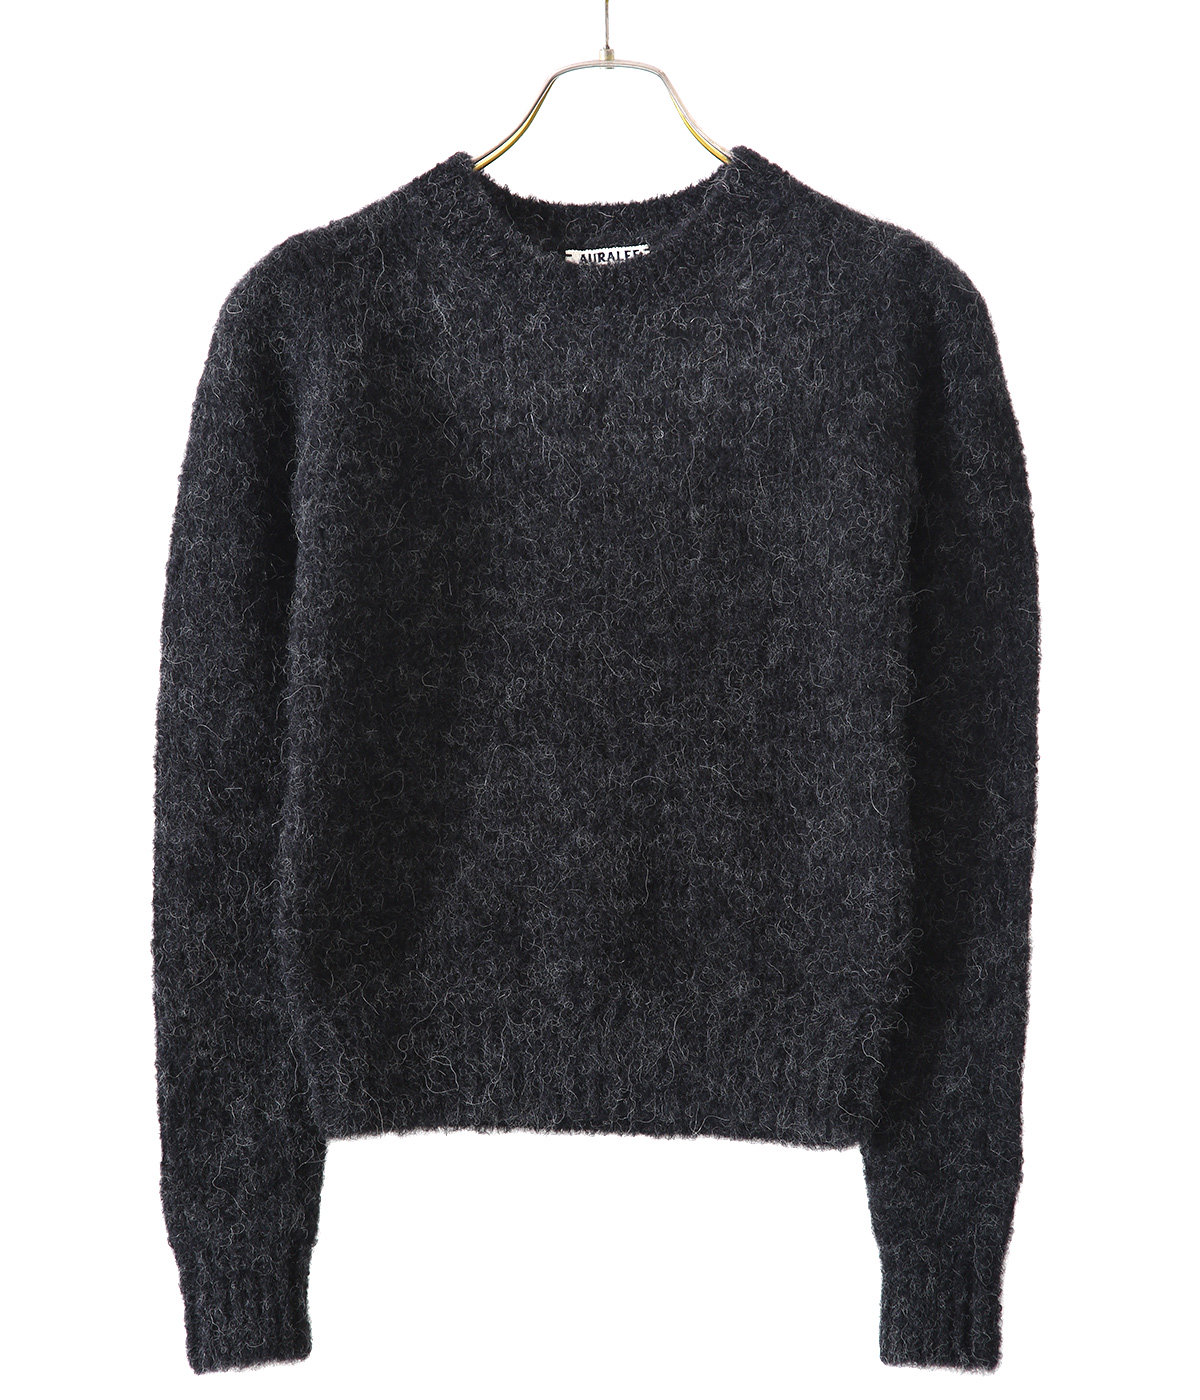 【レディース】ALPACA WOOL SUPER LIGHT KNIT P/O